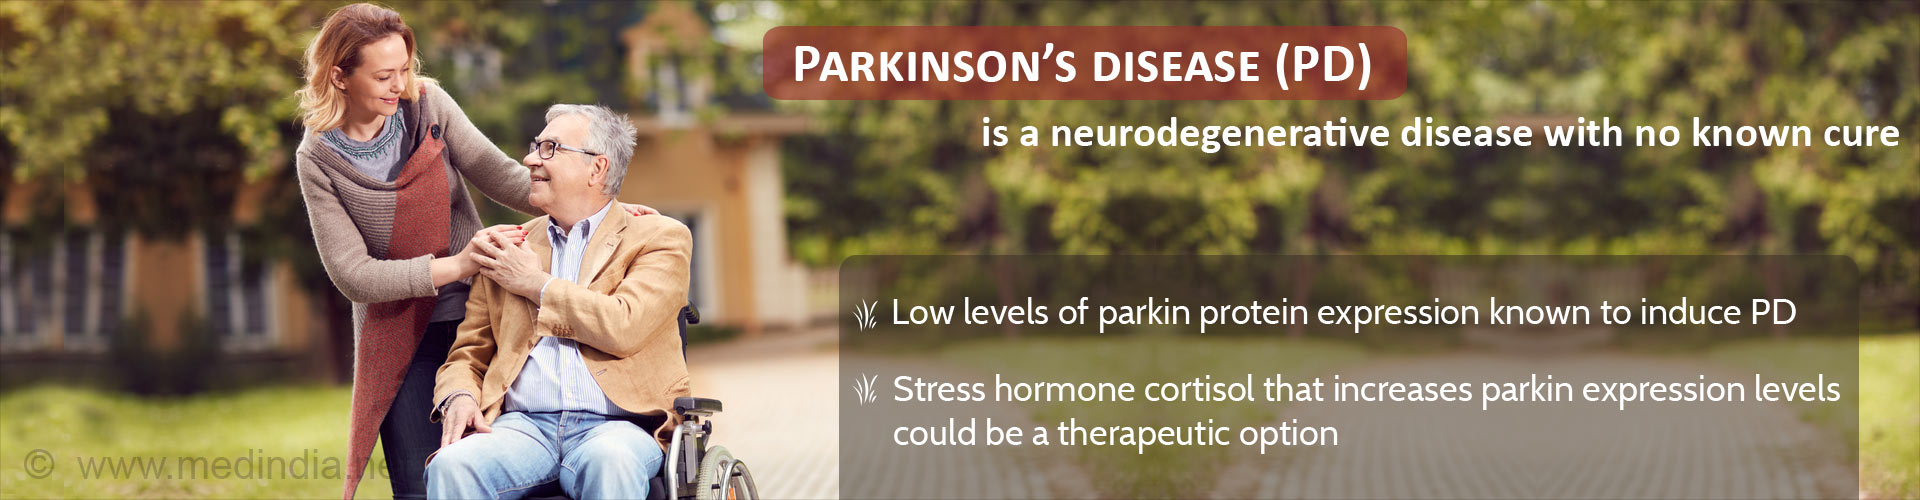 Parkinson's Disease (PD) is a neurodegenerative disease with no known cure